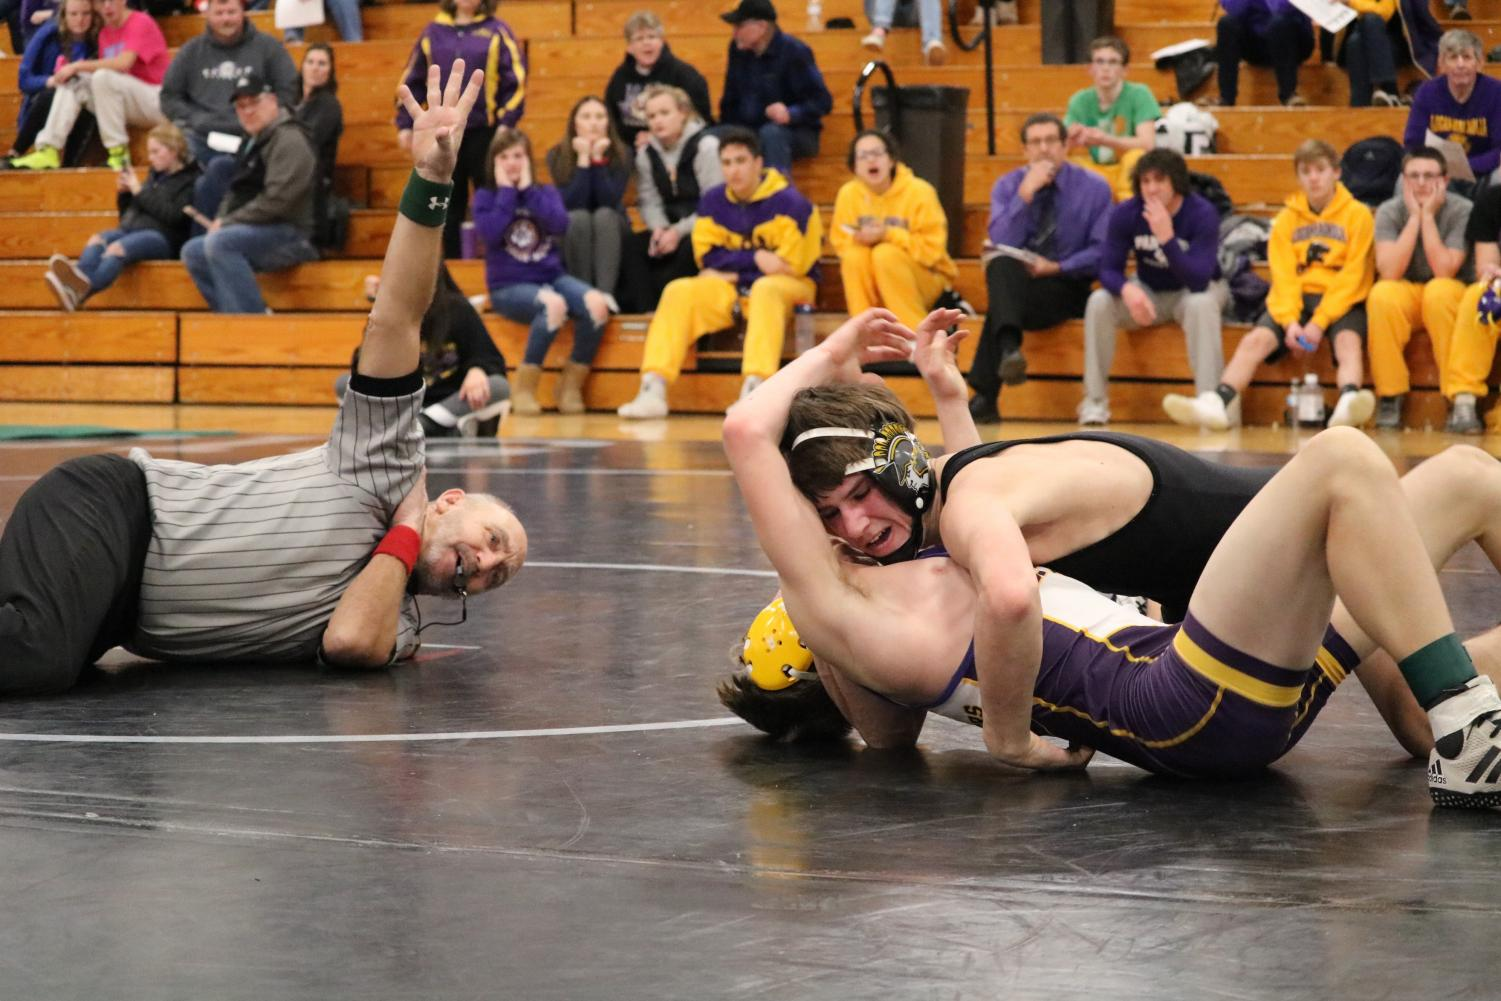 FIGHT UNTIL THE WHISTLE - Sophomore Joe Weaver competes in a tough match at the OA-BCIG tournament earlier in the season. Weaver, wrestling at 120, is one of the six Trojans advancing to districts.